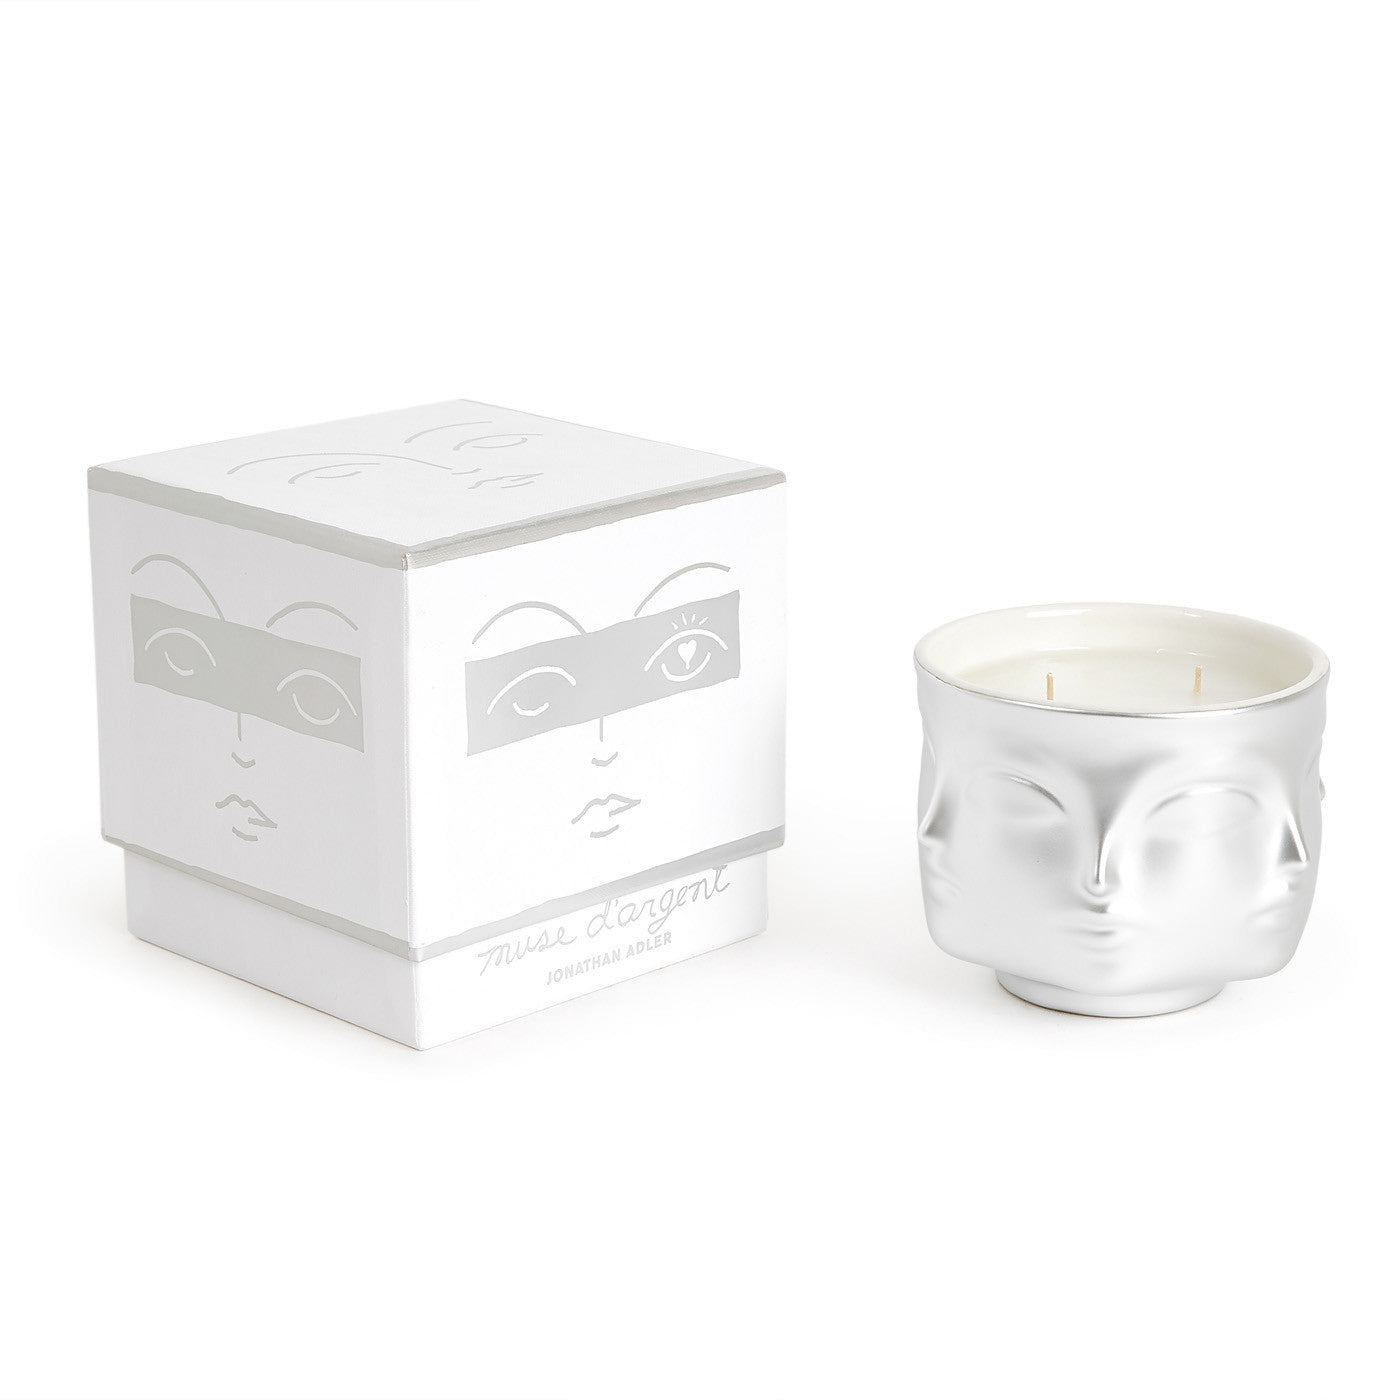 Jonathan Adler Muse D Argent Candle